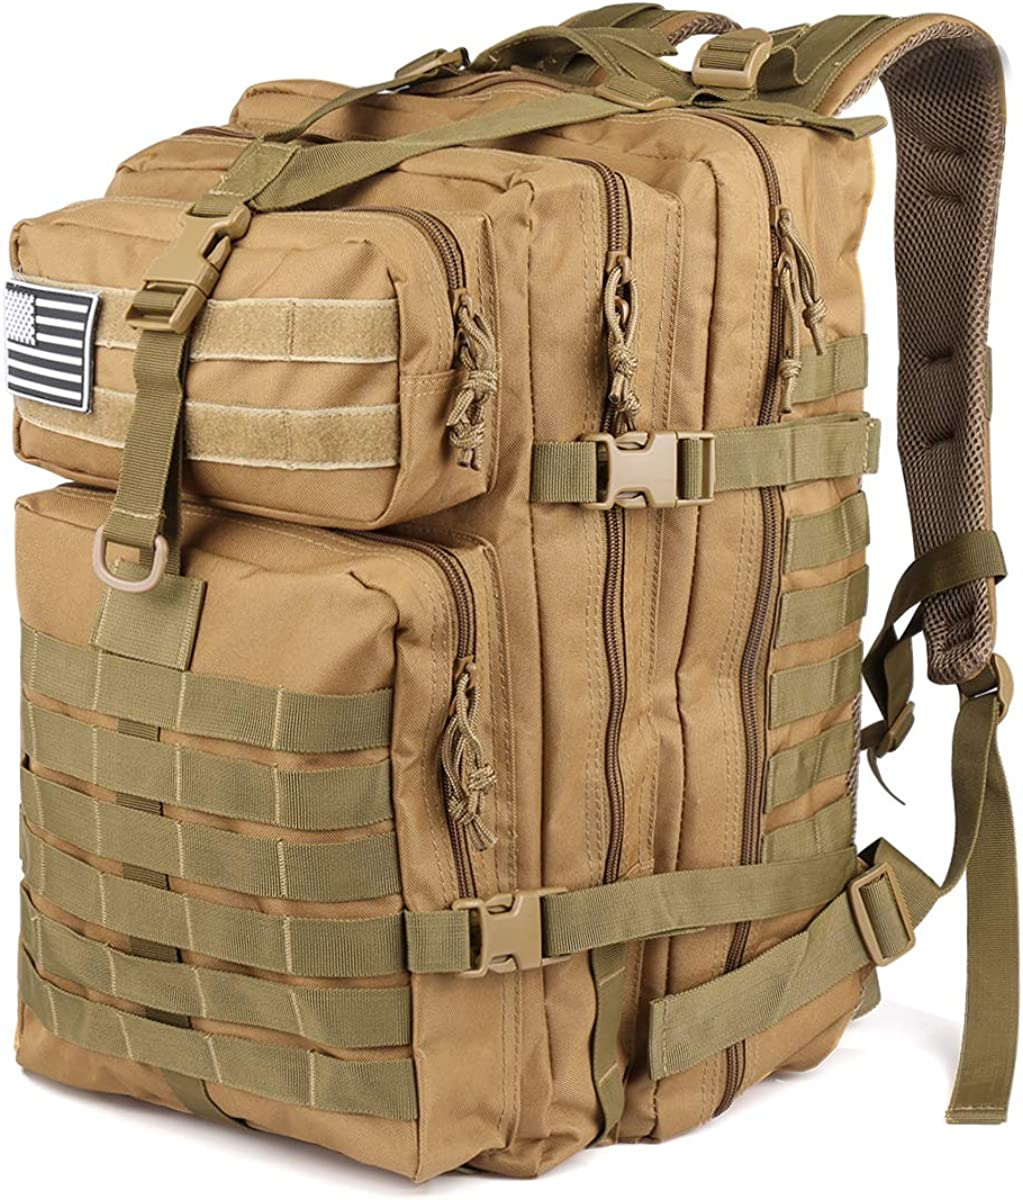 ROARING FIRE National uniform free shipping Tactical Backpack Army Arlington Mall Assault Backpac Molle Pack